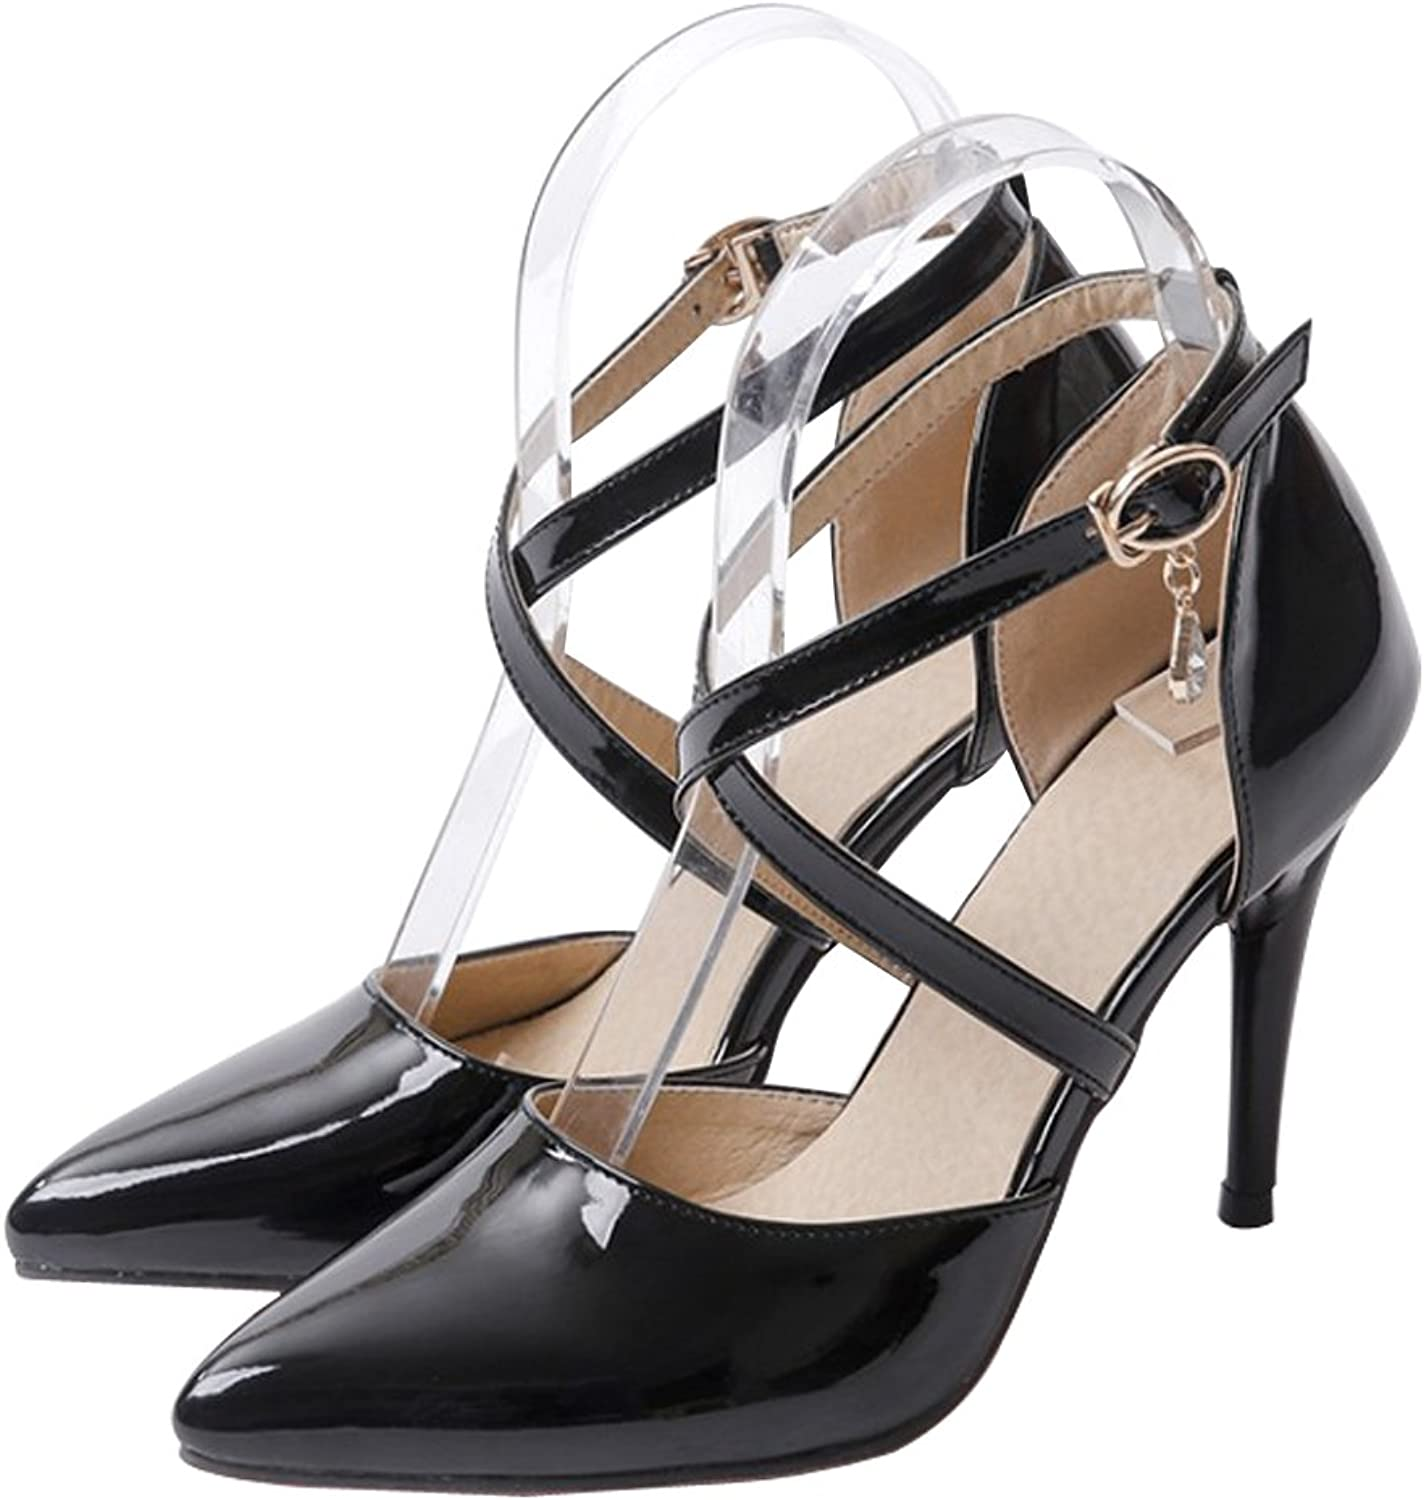 Eclimb Women's Evening Pointed Closed Toe Stiletto Pump Heels shoes